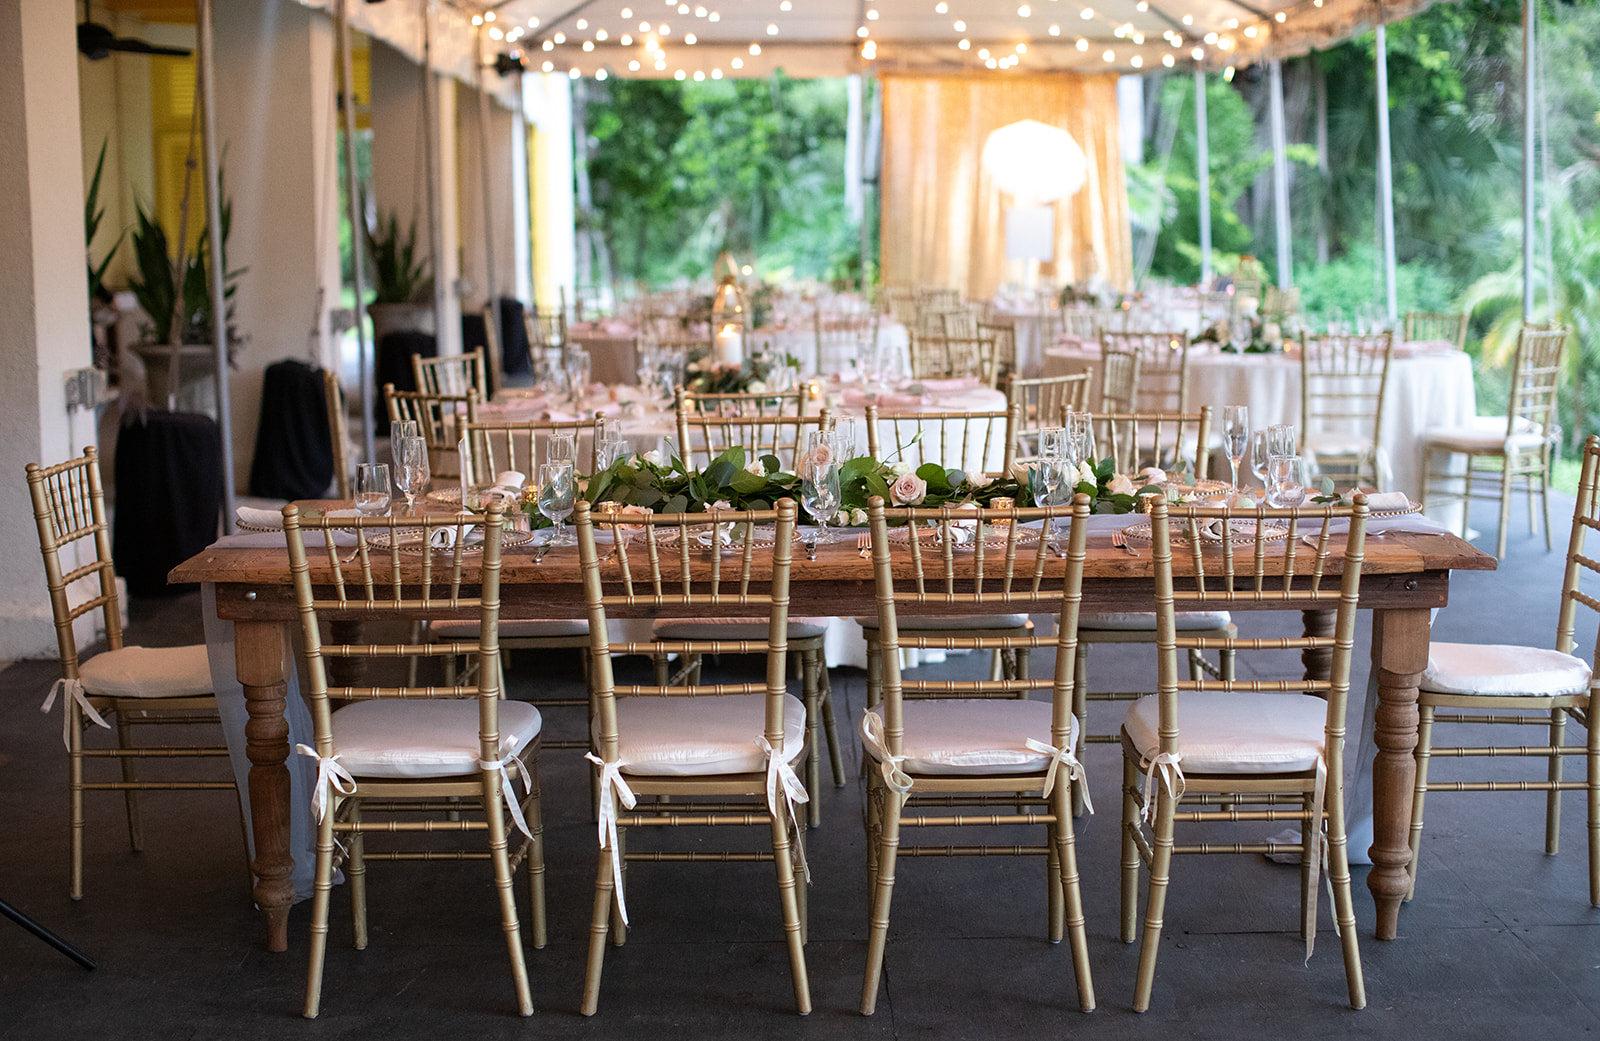 4 Ways to Get the Most Out of Your Wedding Rentals